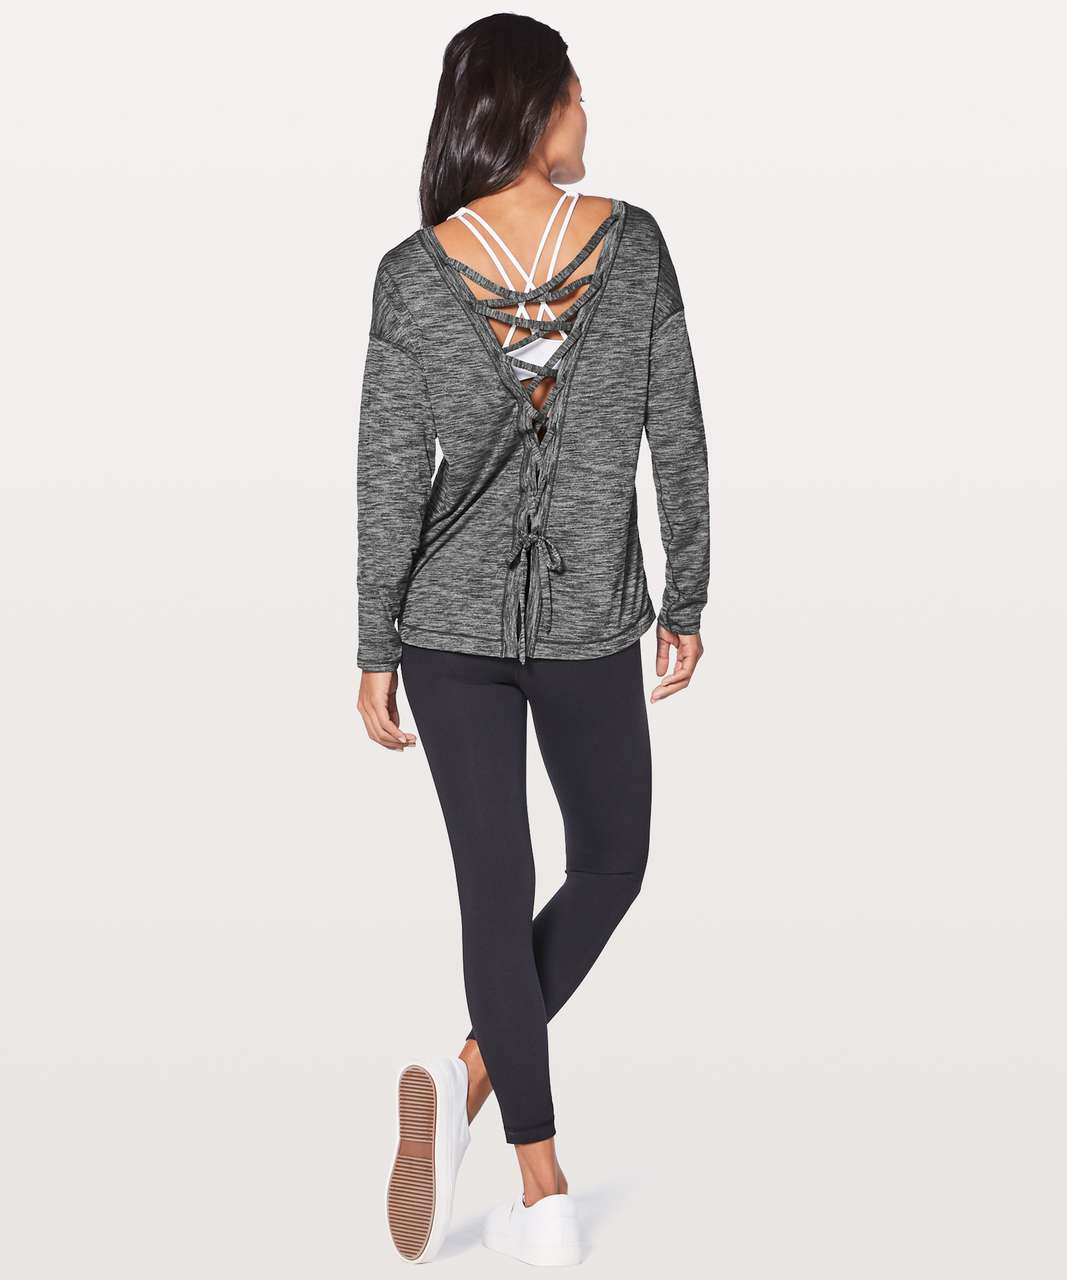 Lululemon Laced With Intent Long Sleeve - Heathered Black